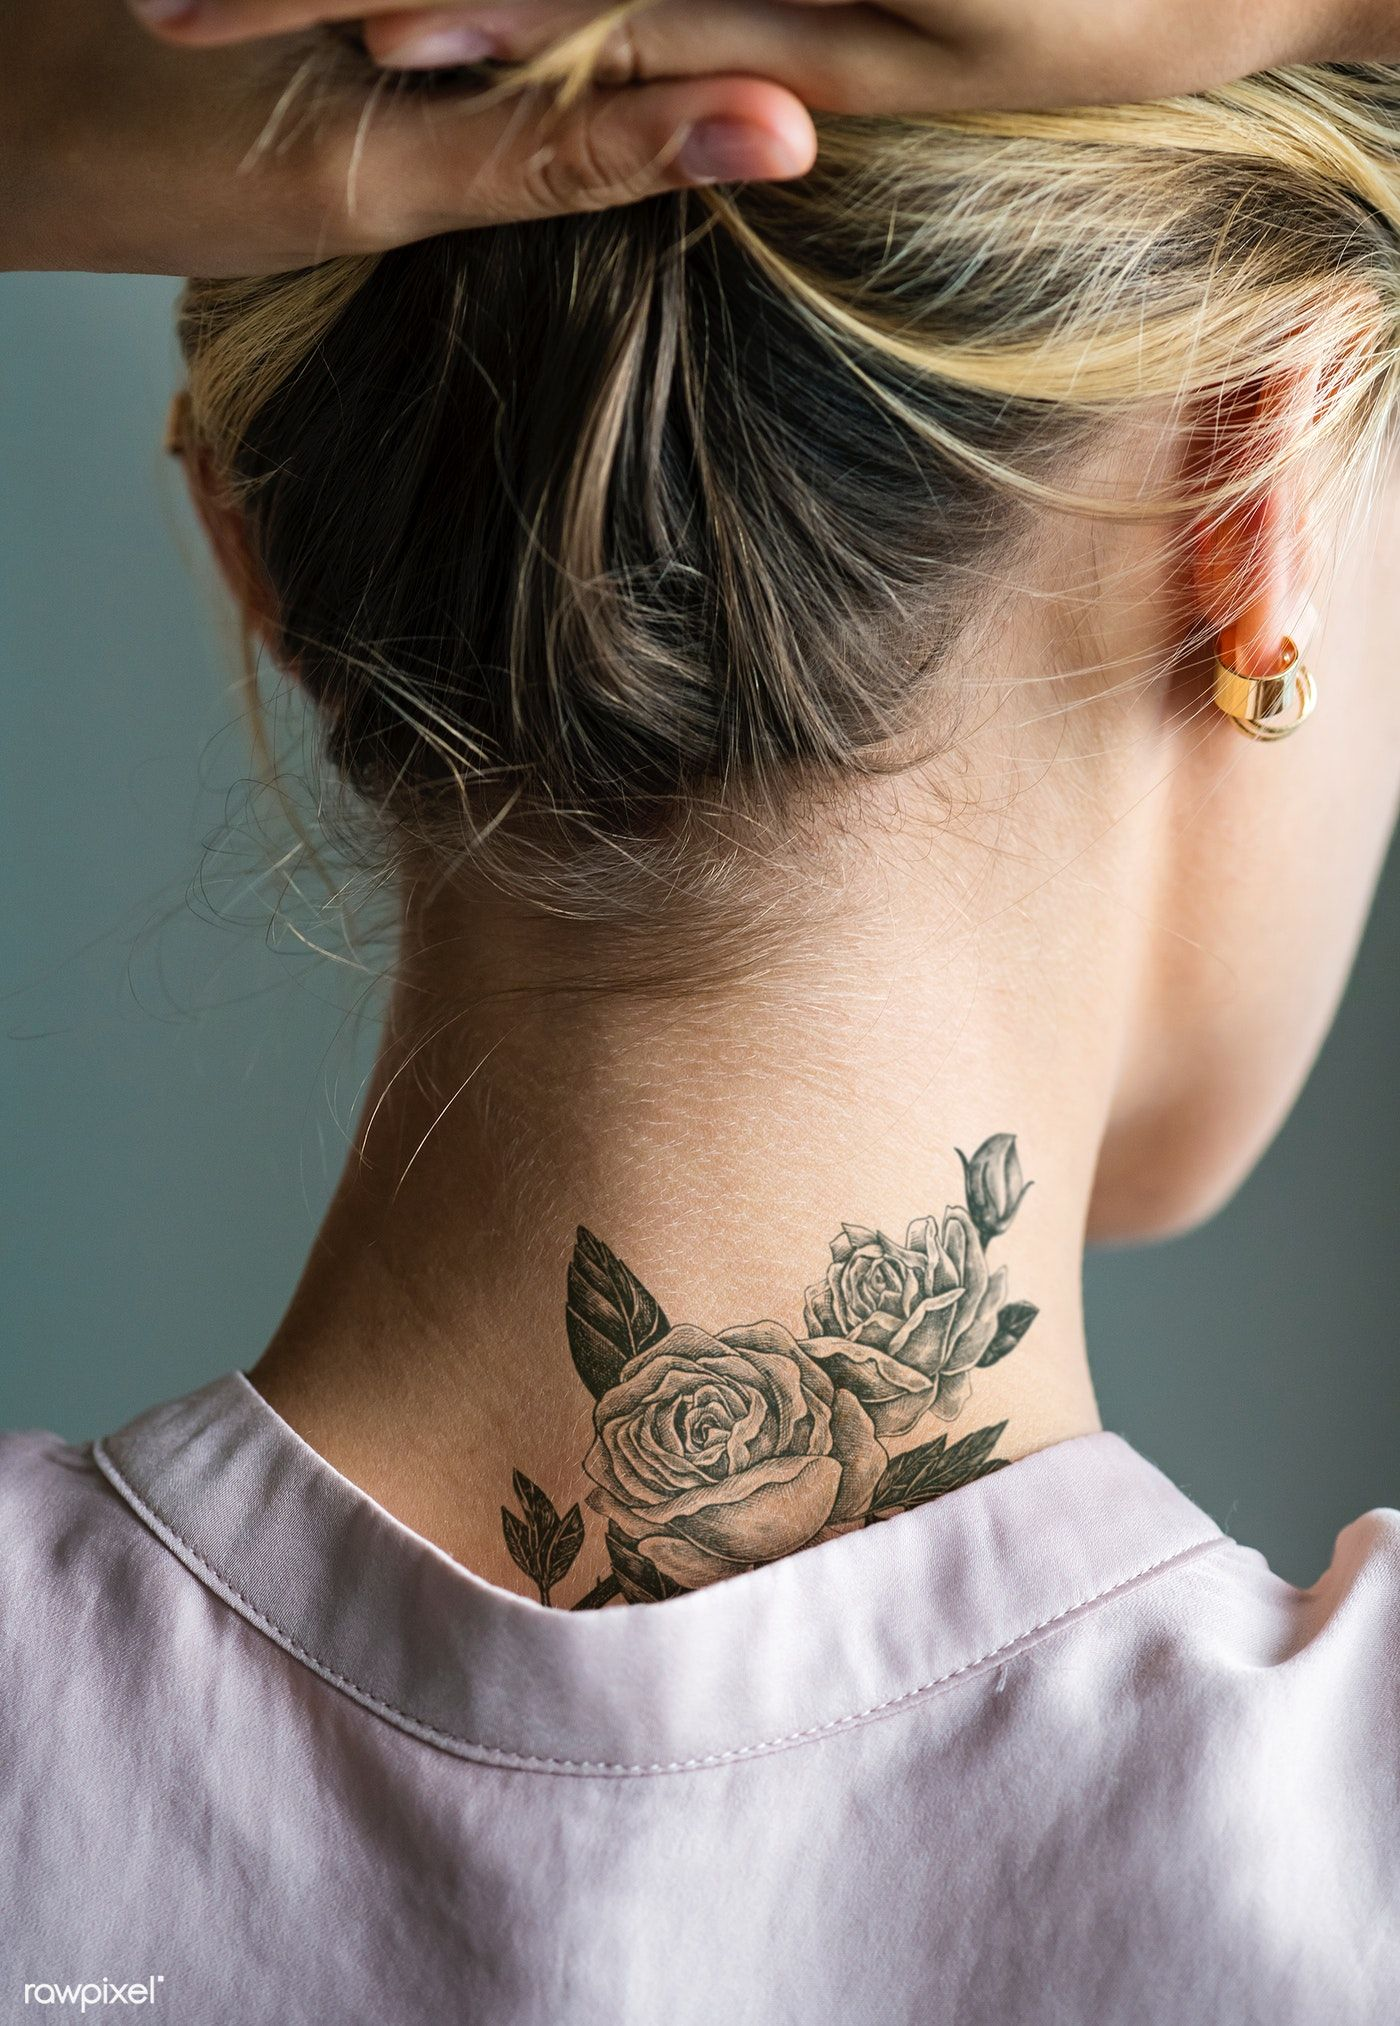 Download premium psd of Back neck tattoo of a woman 383879